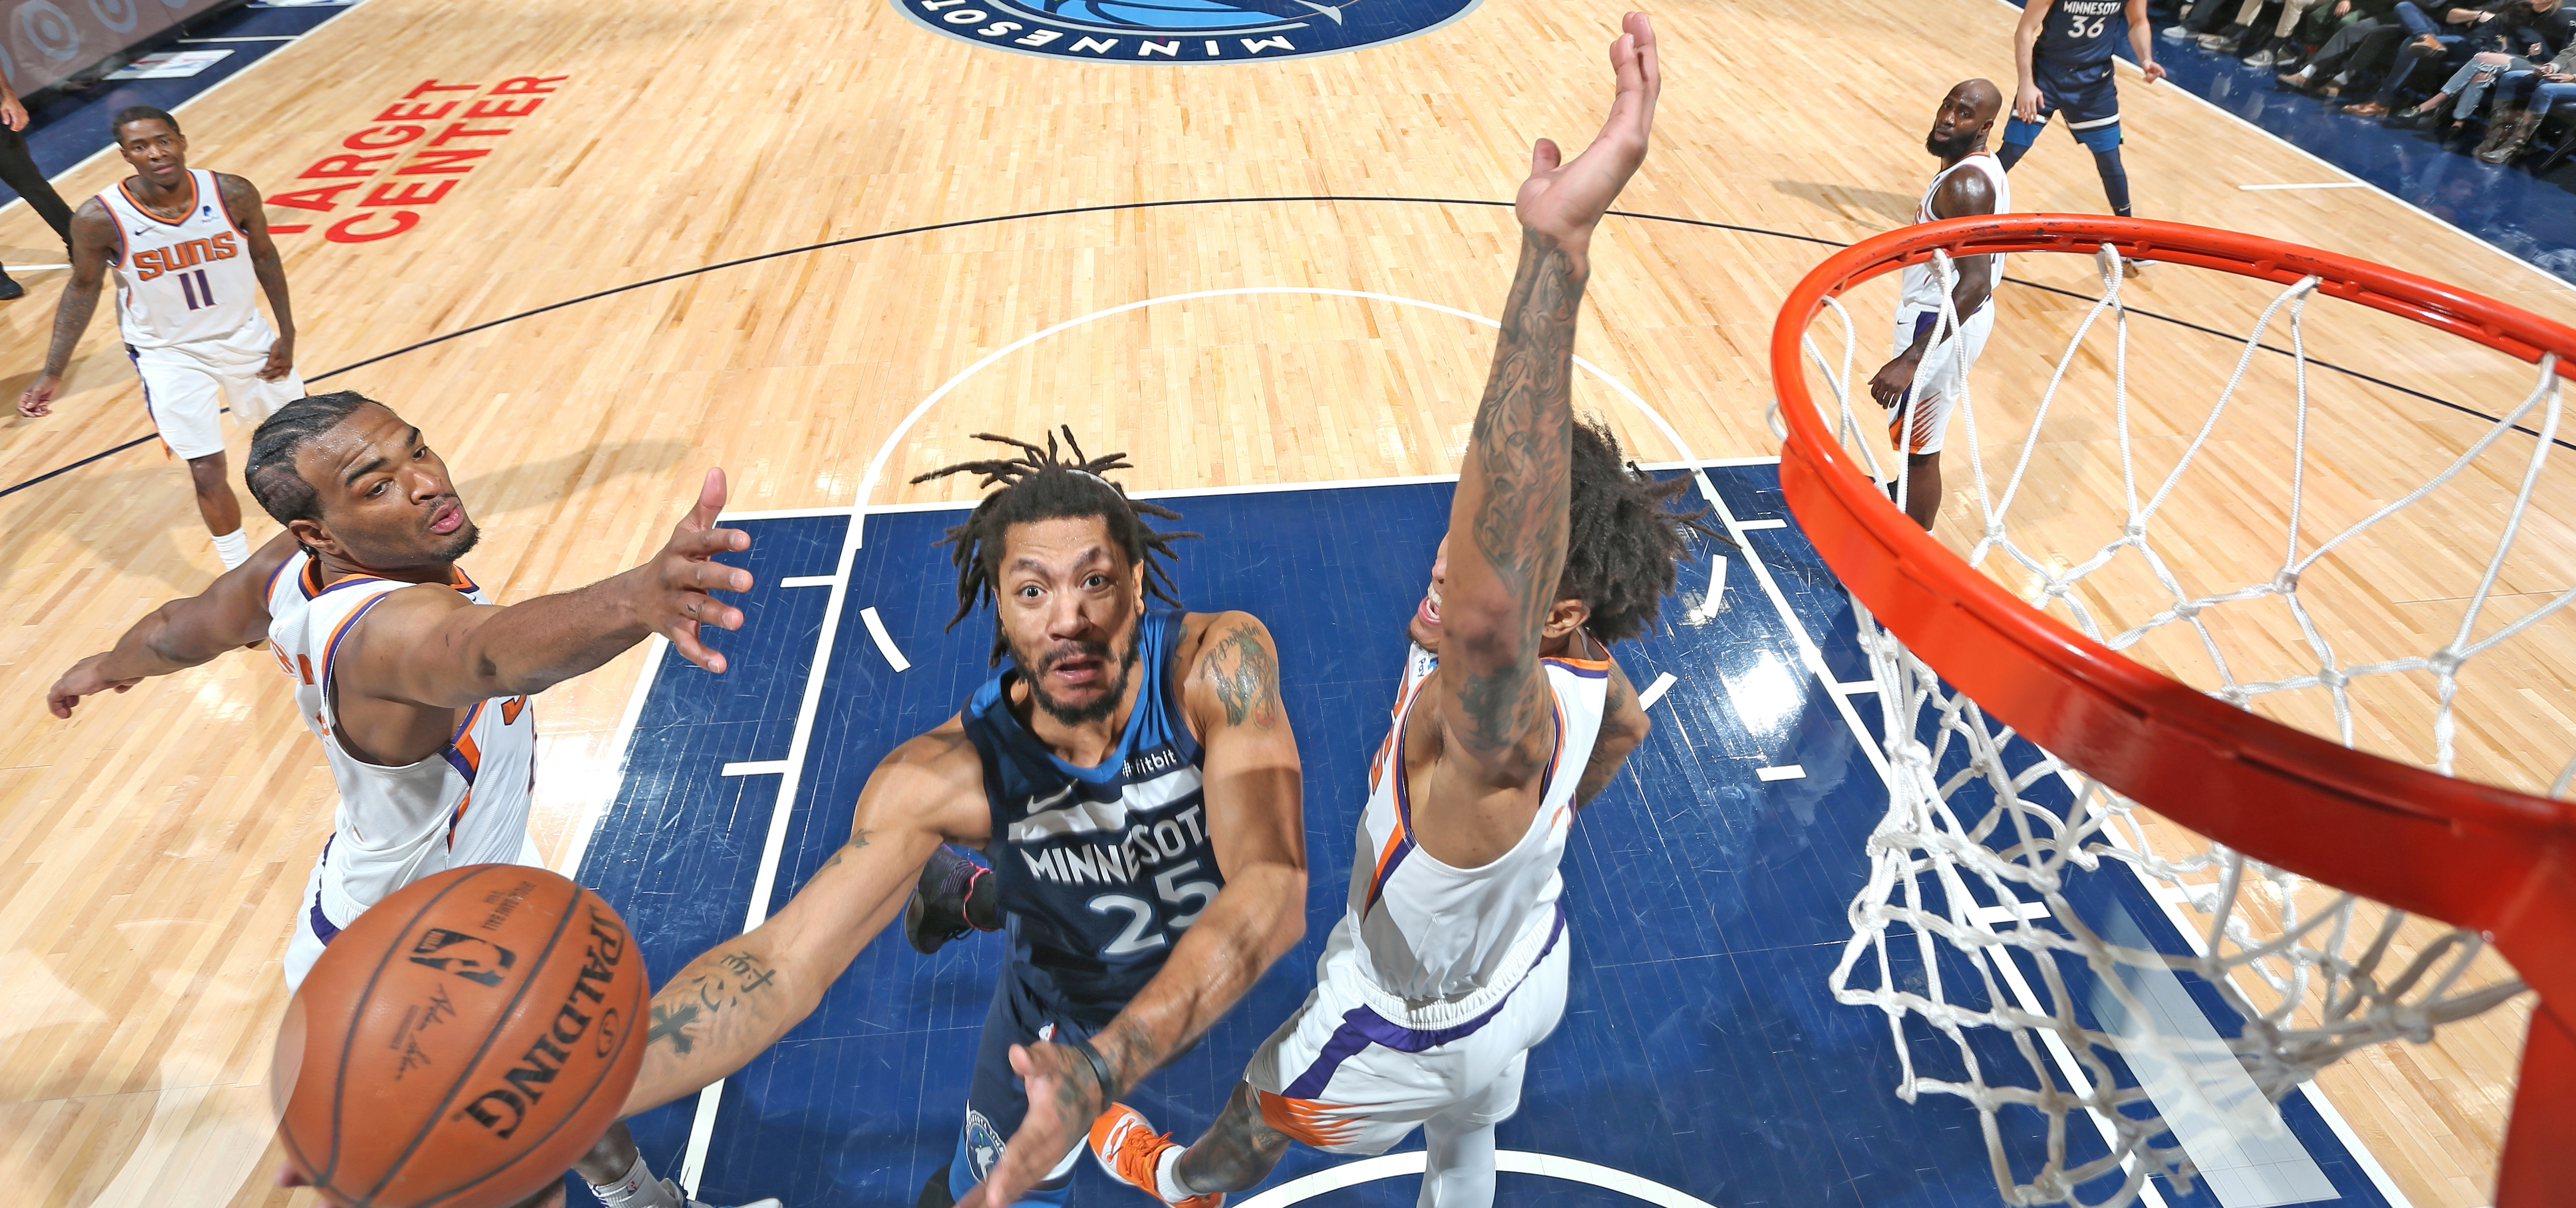 645afebdd12d Derrick Rose Wins It For The Wolves As They Take Down Suns ...